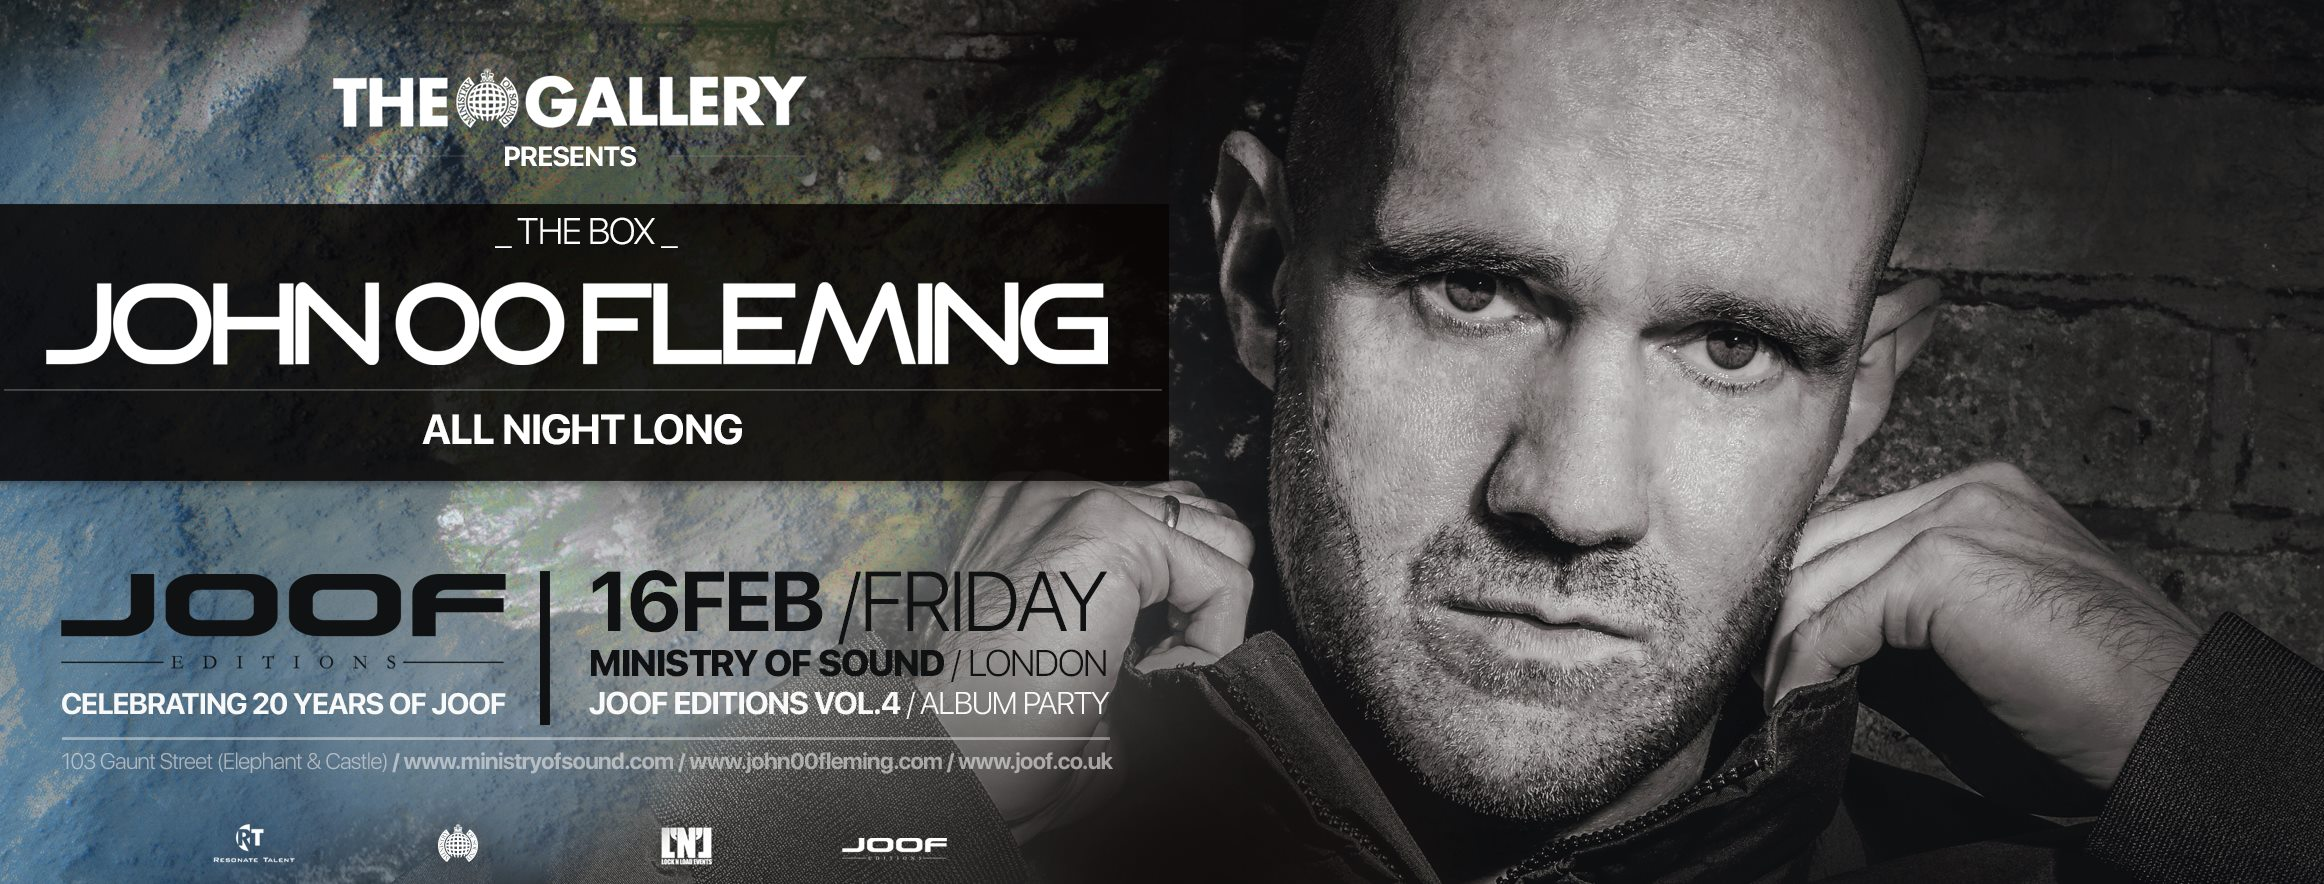 J00f Editions 4 The Gallery Ministry of Sound